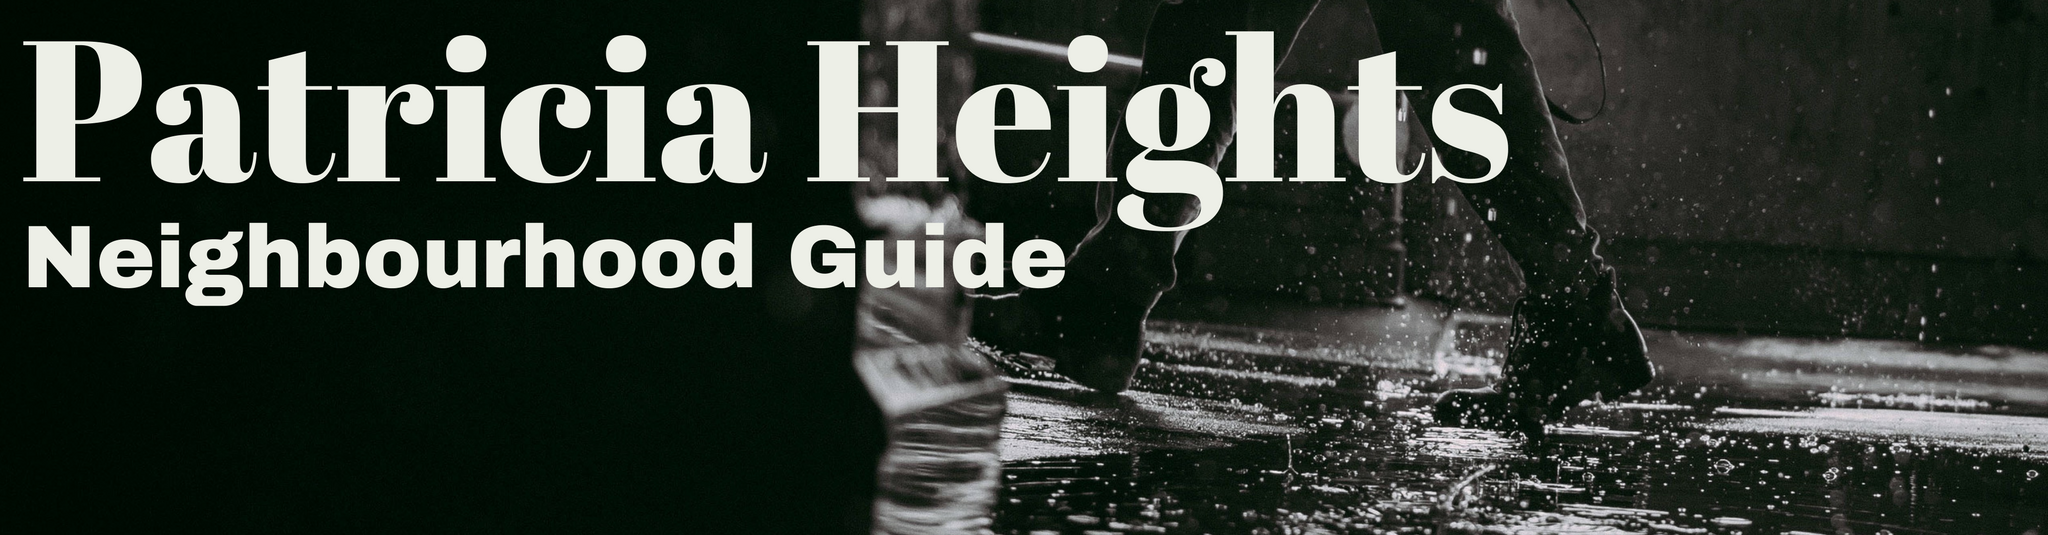 Patricia Heights Neighbourhood Guide